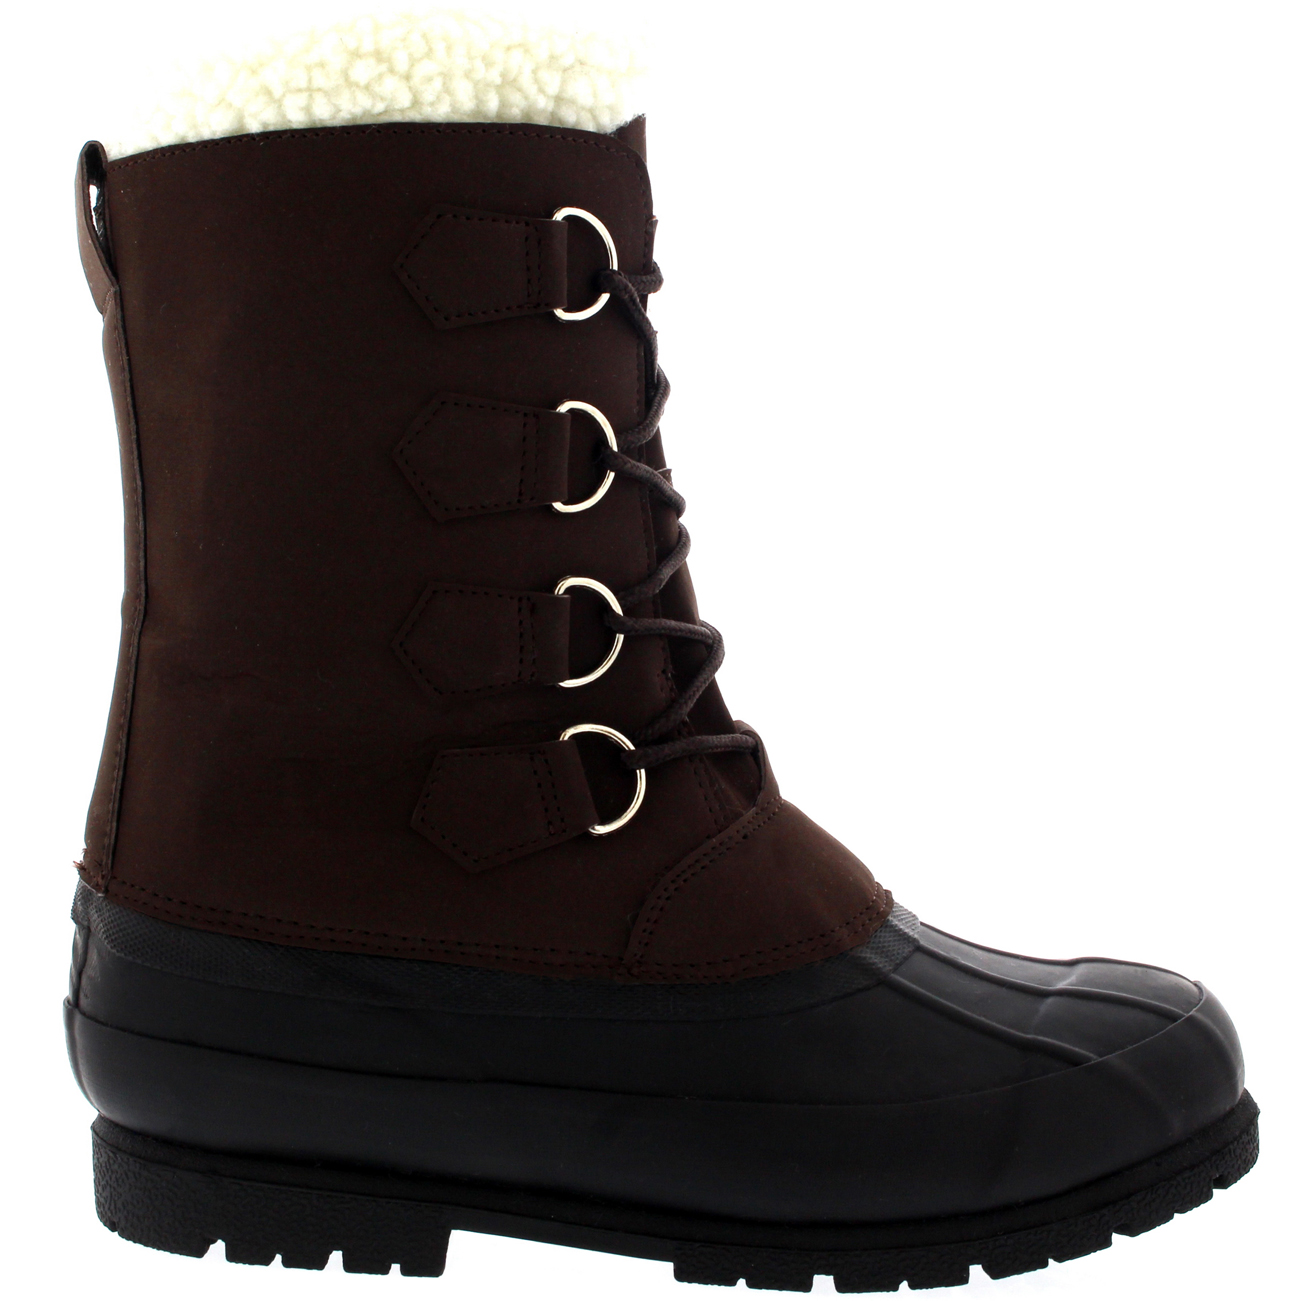 Mens Wool Lined 100% Rubber Duck Sole Outdoor Cold Weather Winter ...